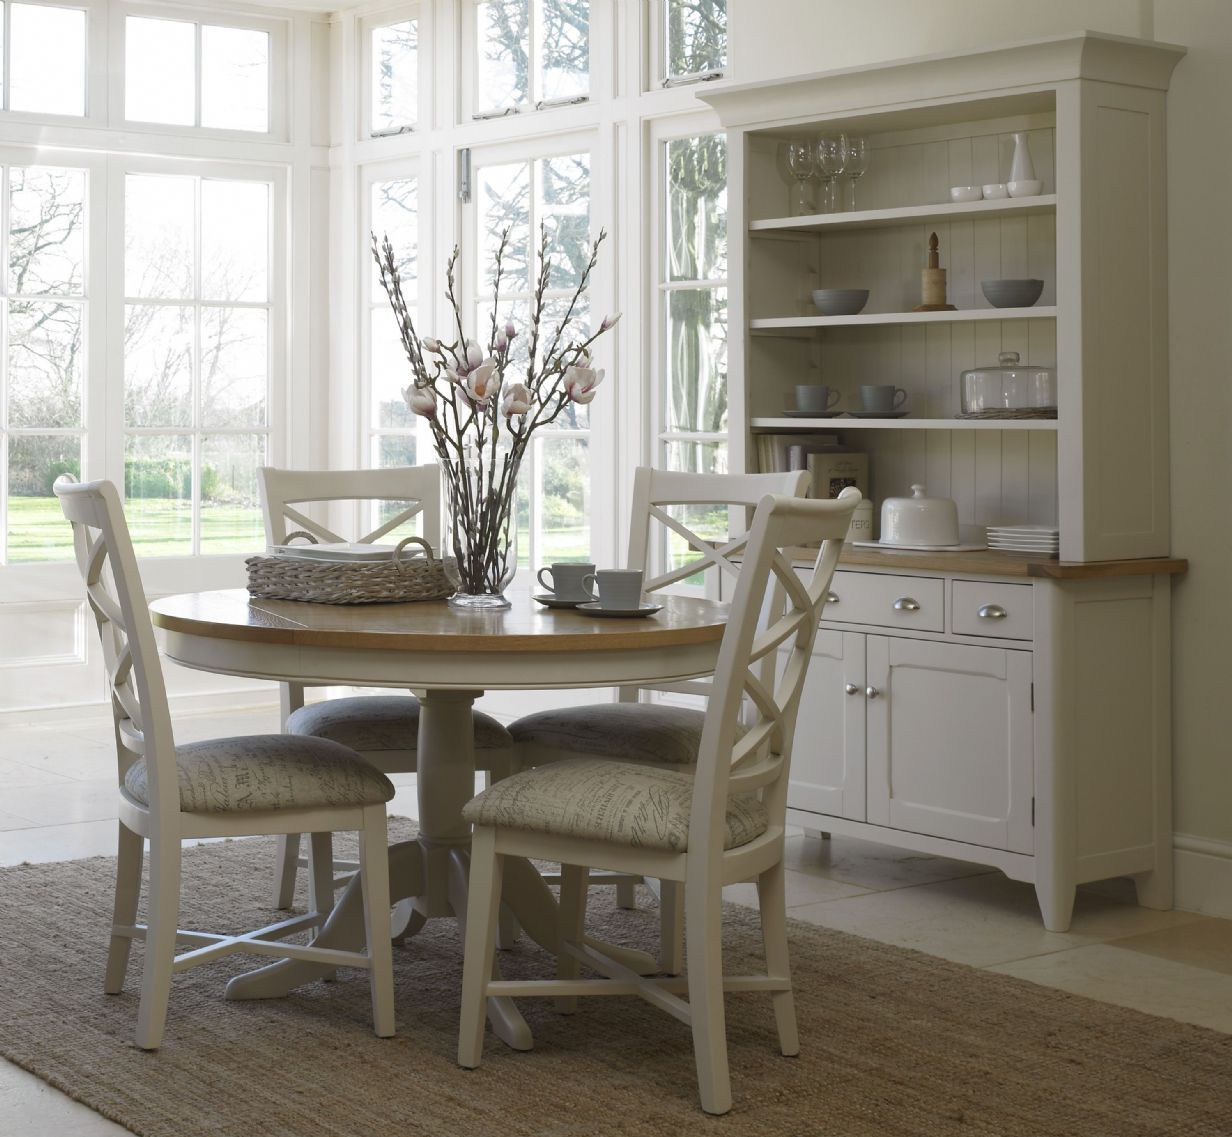 Dining Table For Small Room Gorgeous Nice Lightcoloured Furniture For The Bright Breakfast Room Only Design Decoration